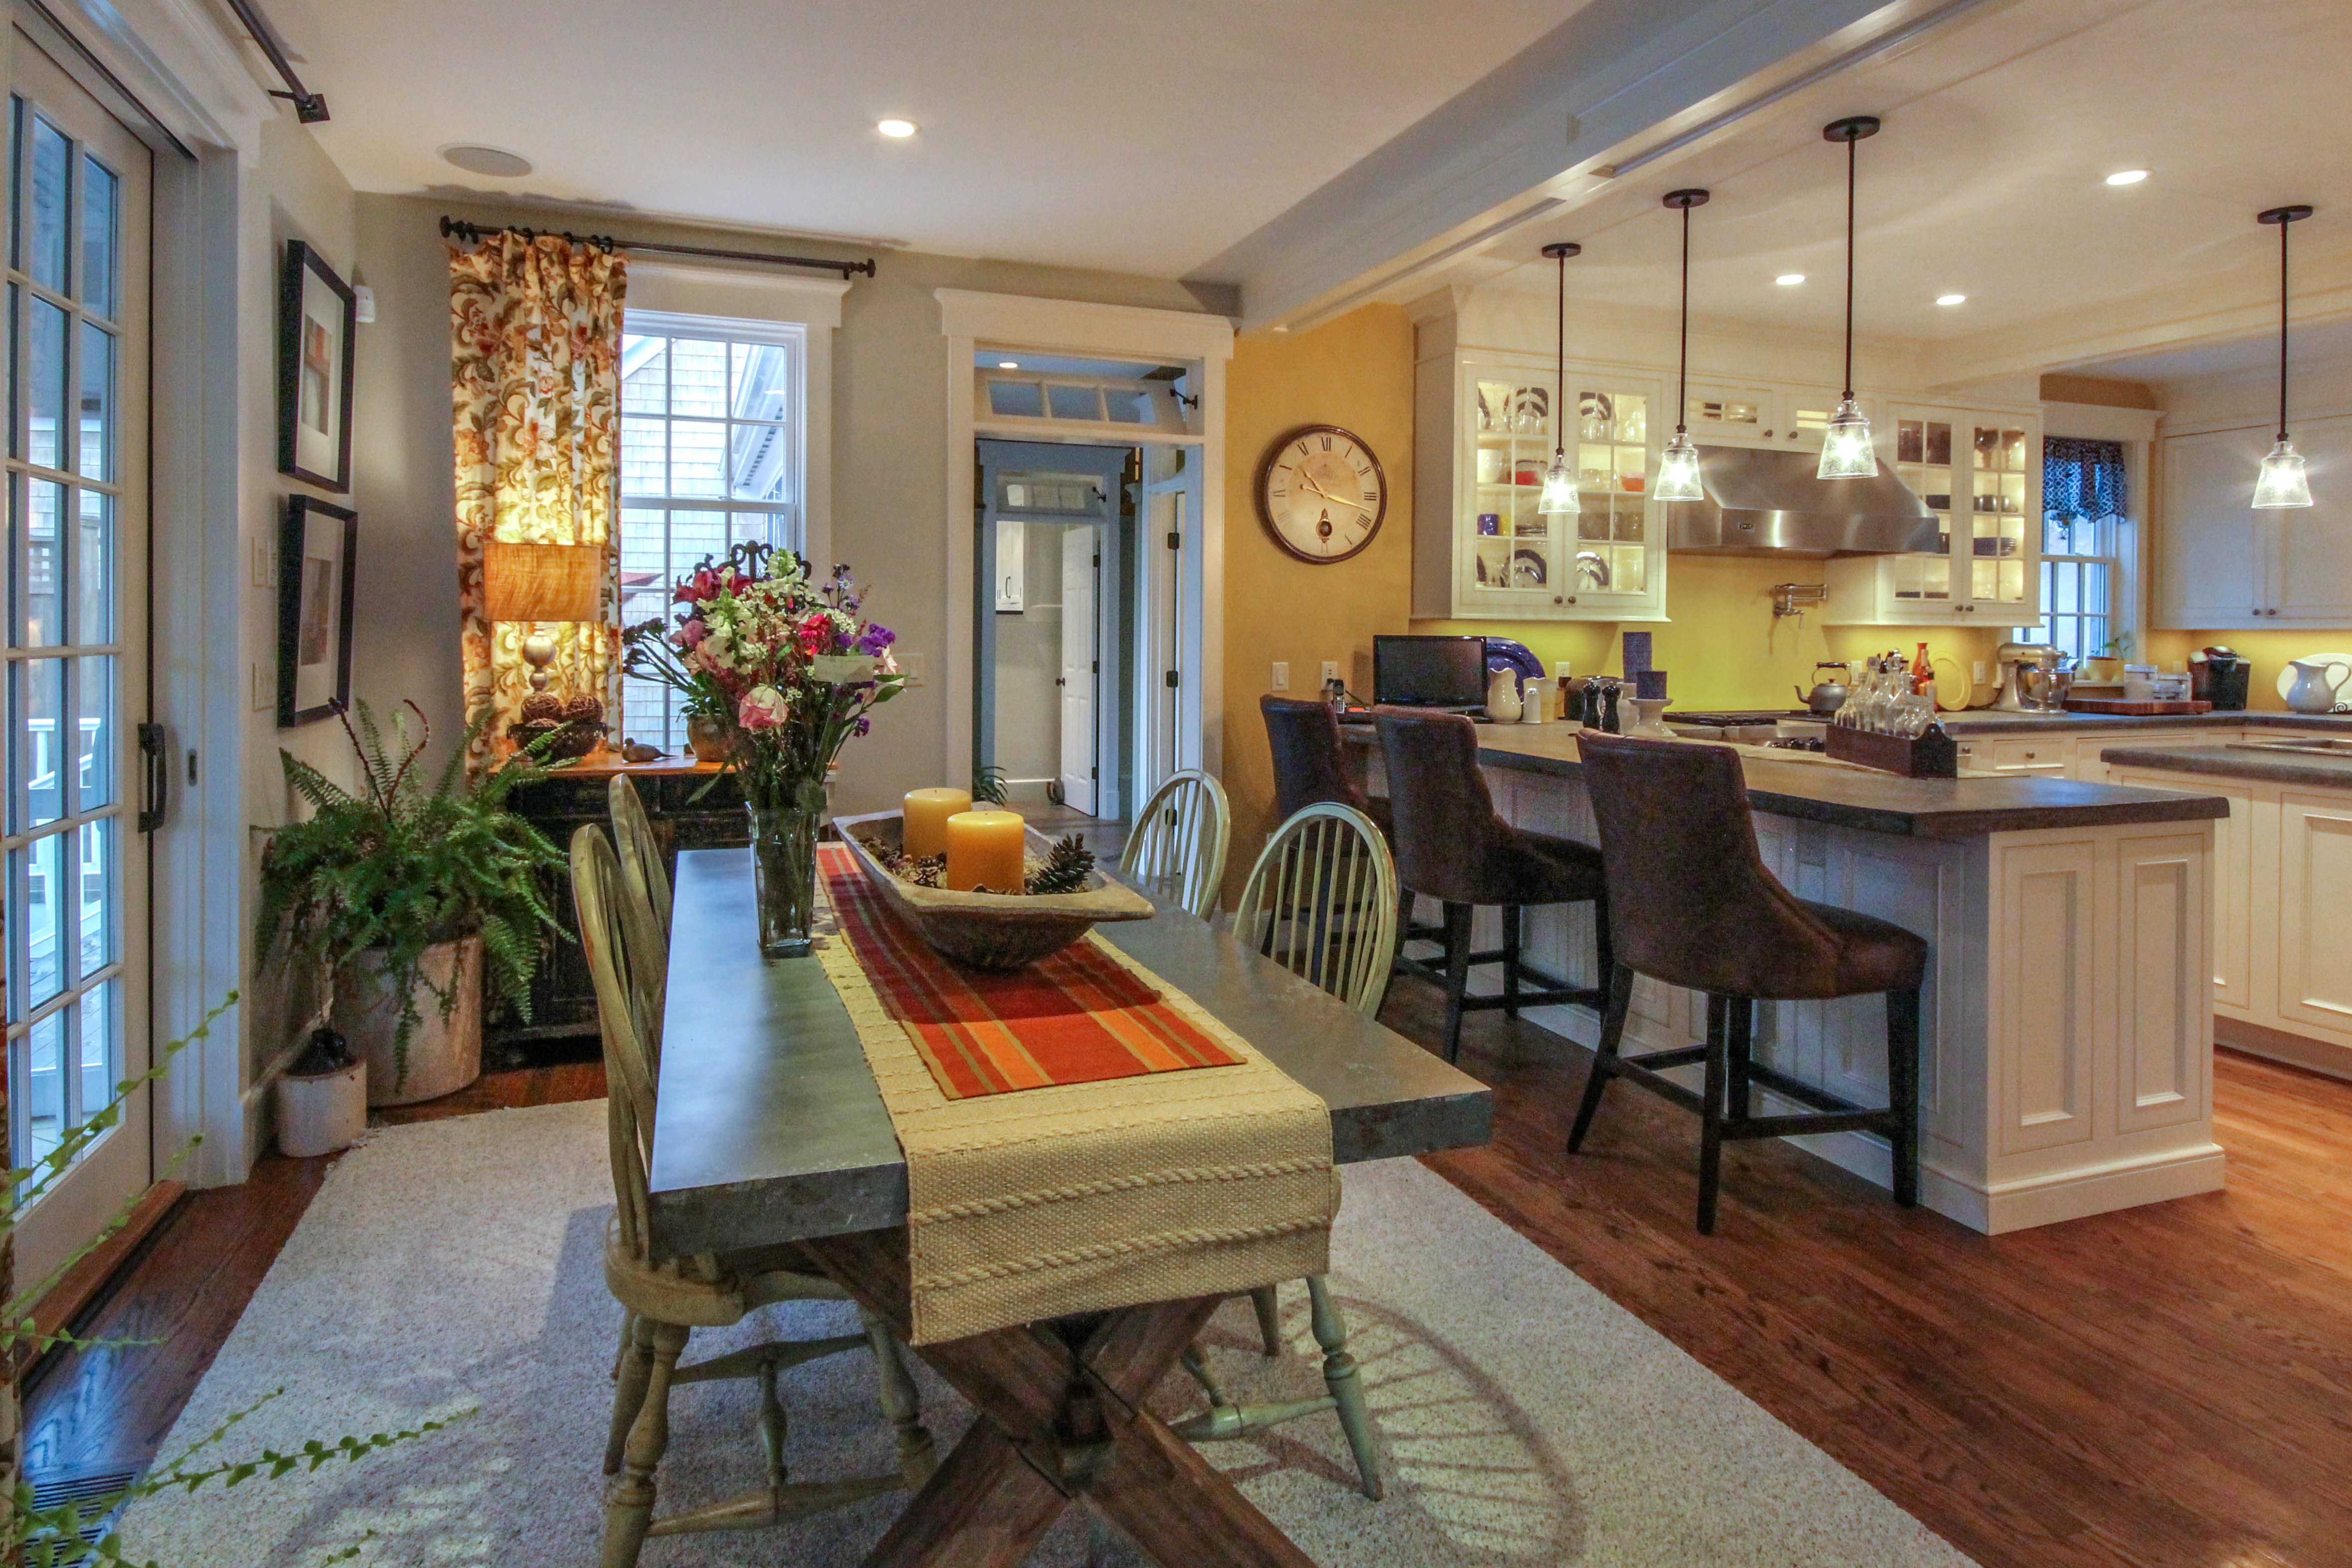 Impressive Chefs Kitchen Is Adjacent To The Dining Area Which Leads A Screened Porch